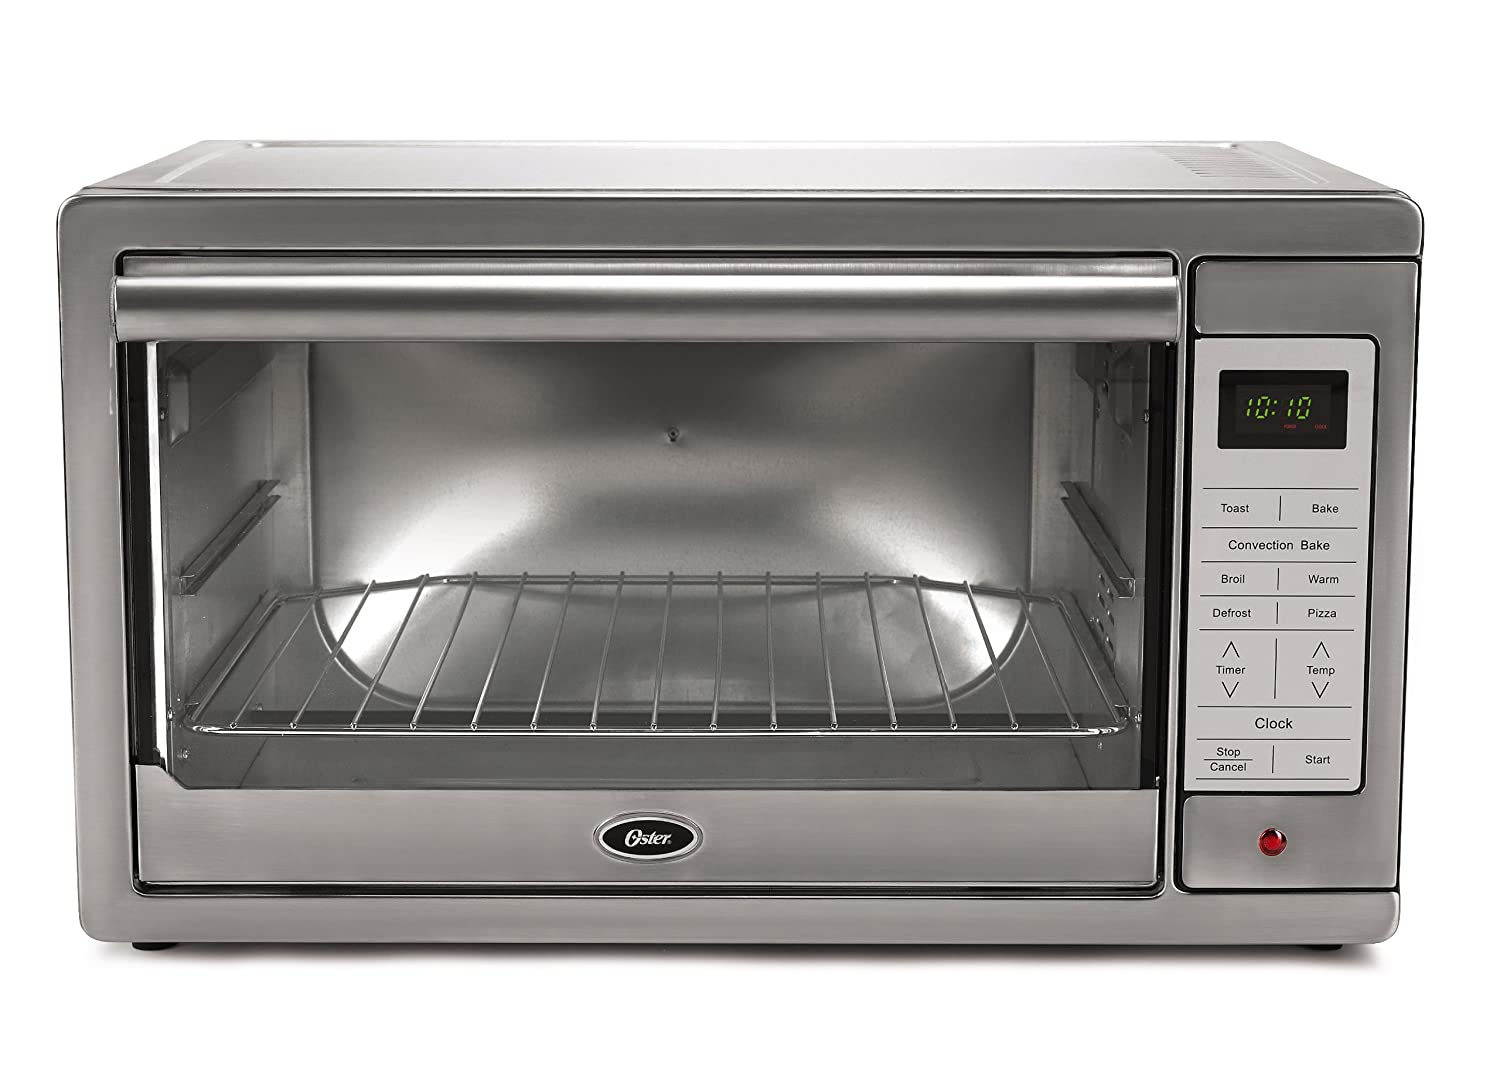 Best Oven: Best Rated Toaster Ovens